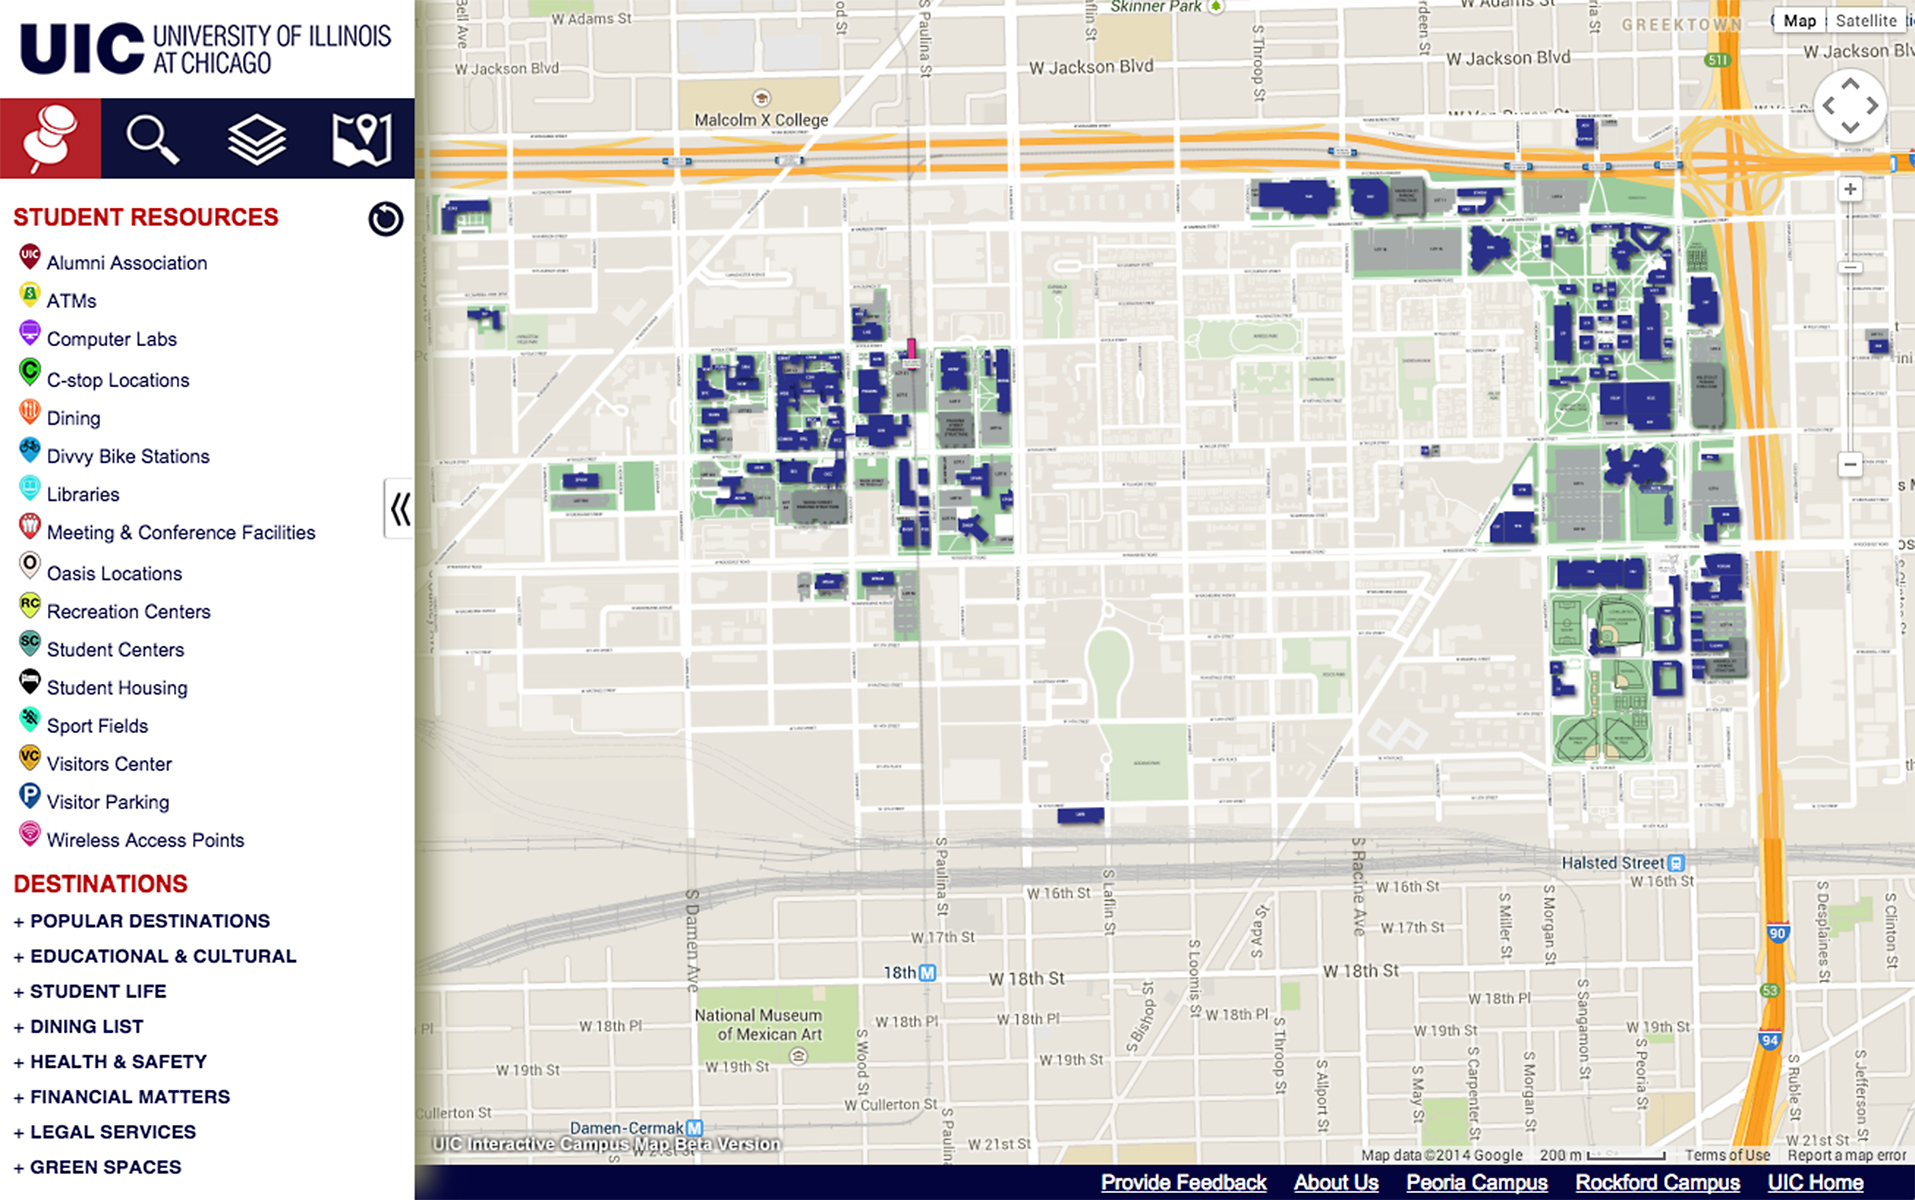 Find directions, resources with interactive campus map | UIC Today